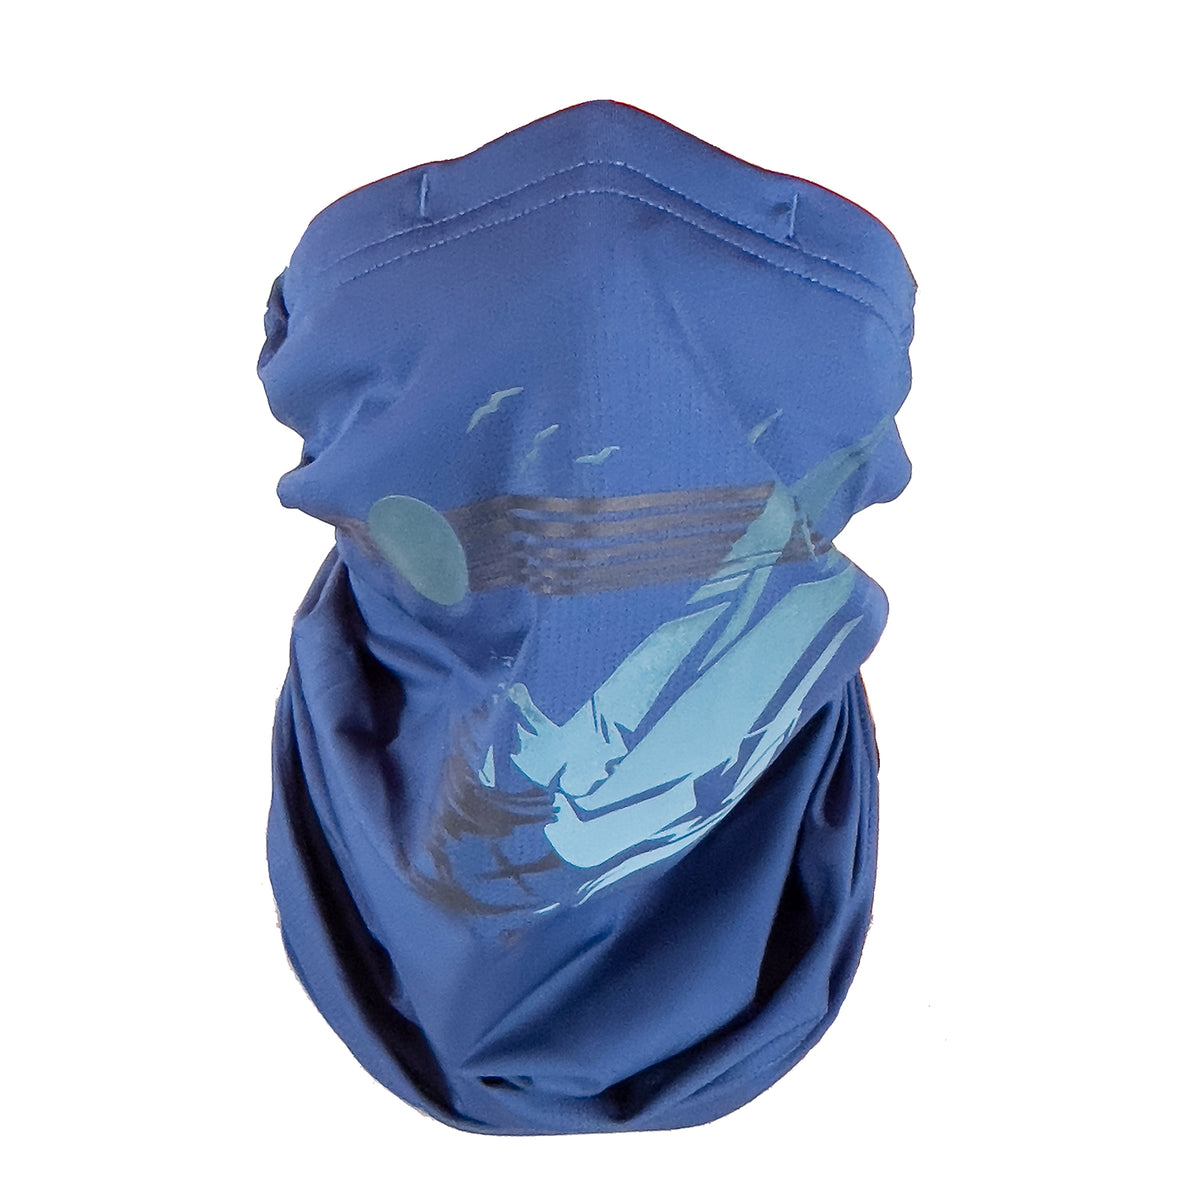 Puretec cool® Antimicrobial Neck Gaiter with Nanofiber Filter (Blue Quartz-Sails)